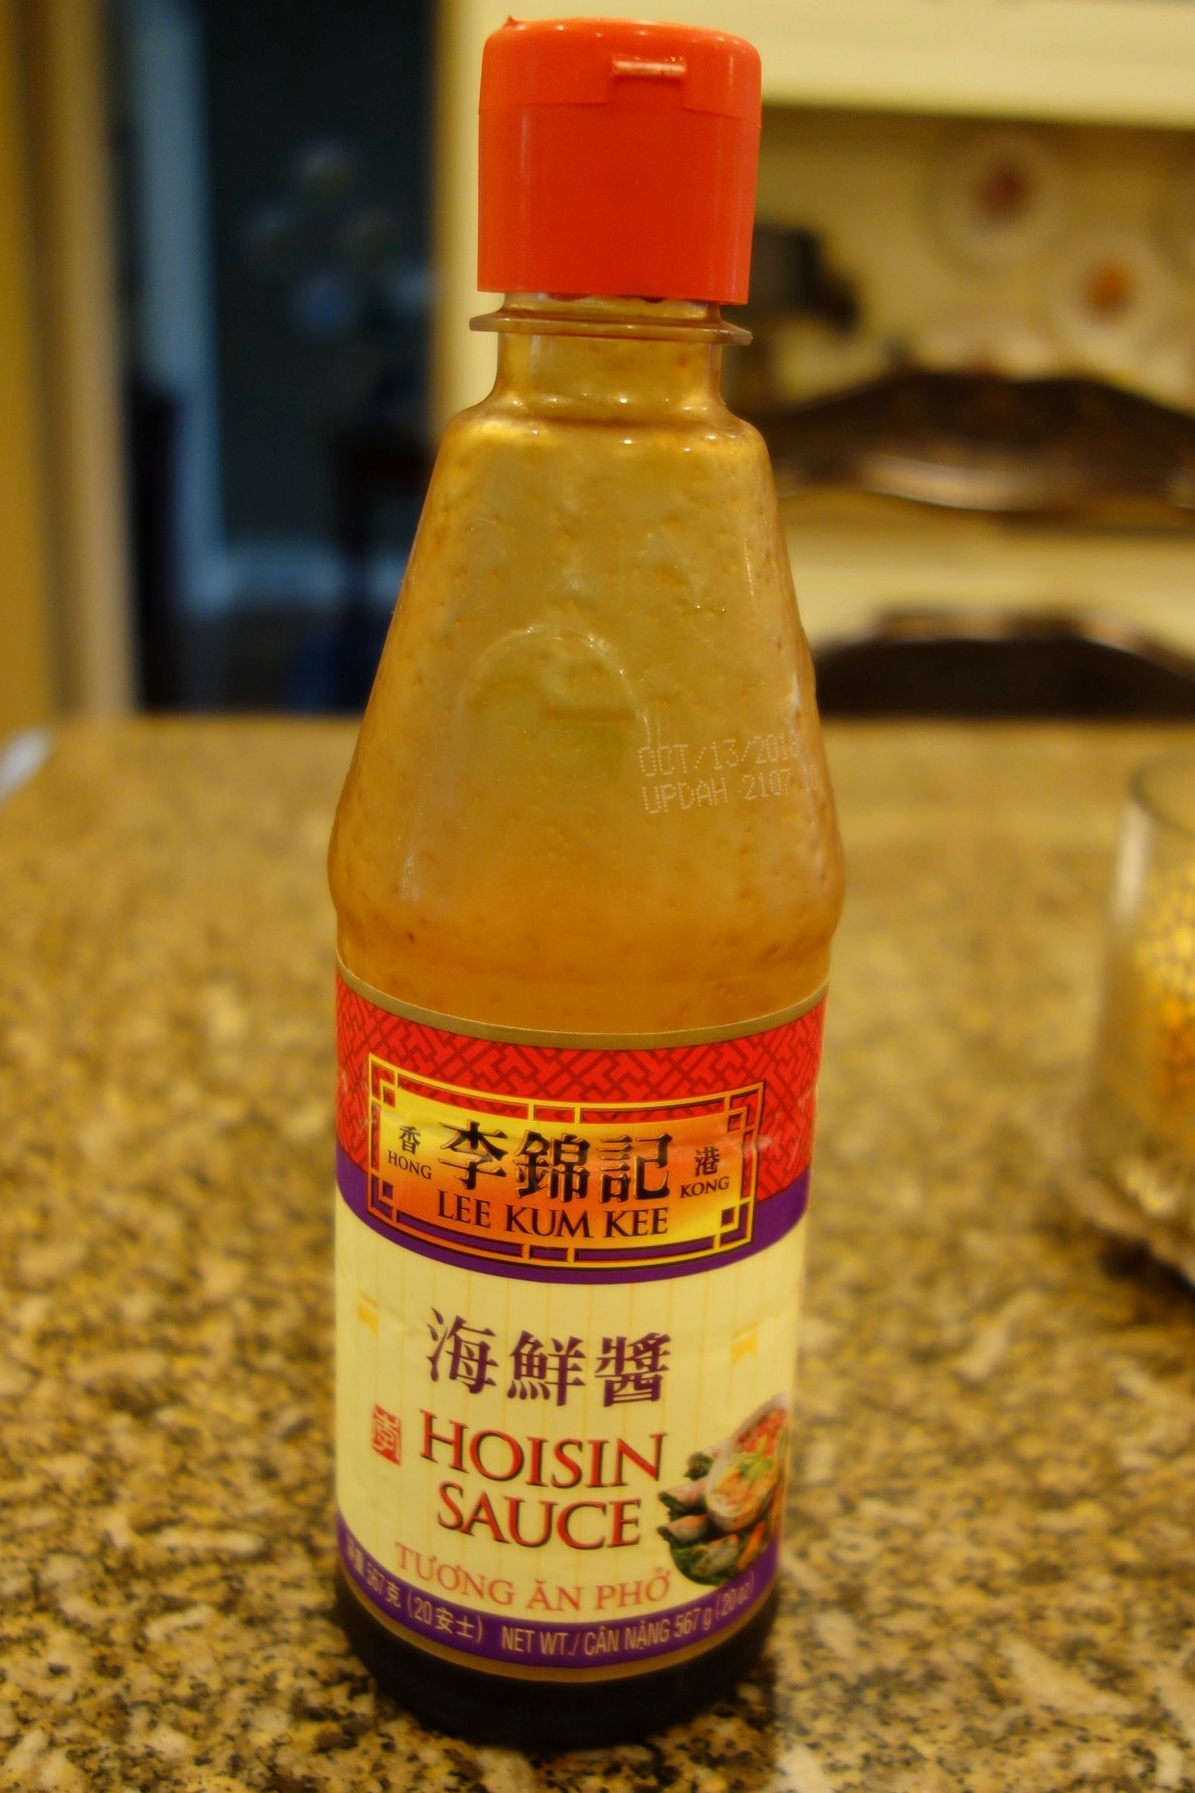 Hoisin sauce is the sweet to Sambal's spicy. Together, they are awesome!